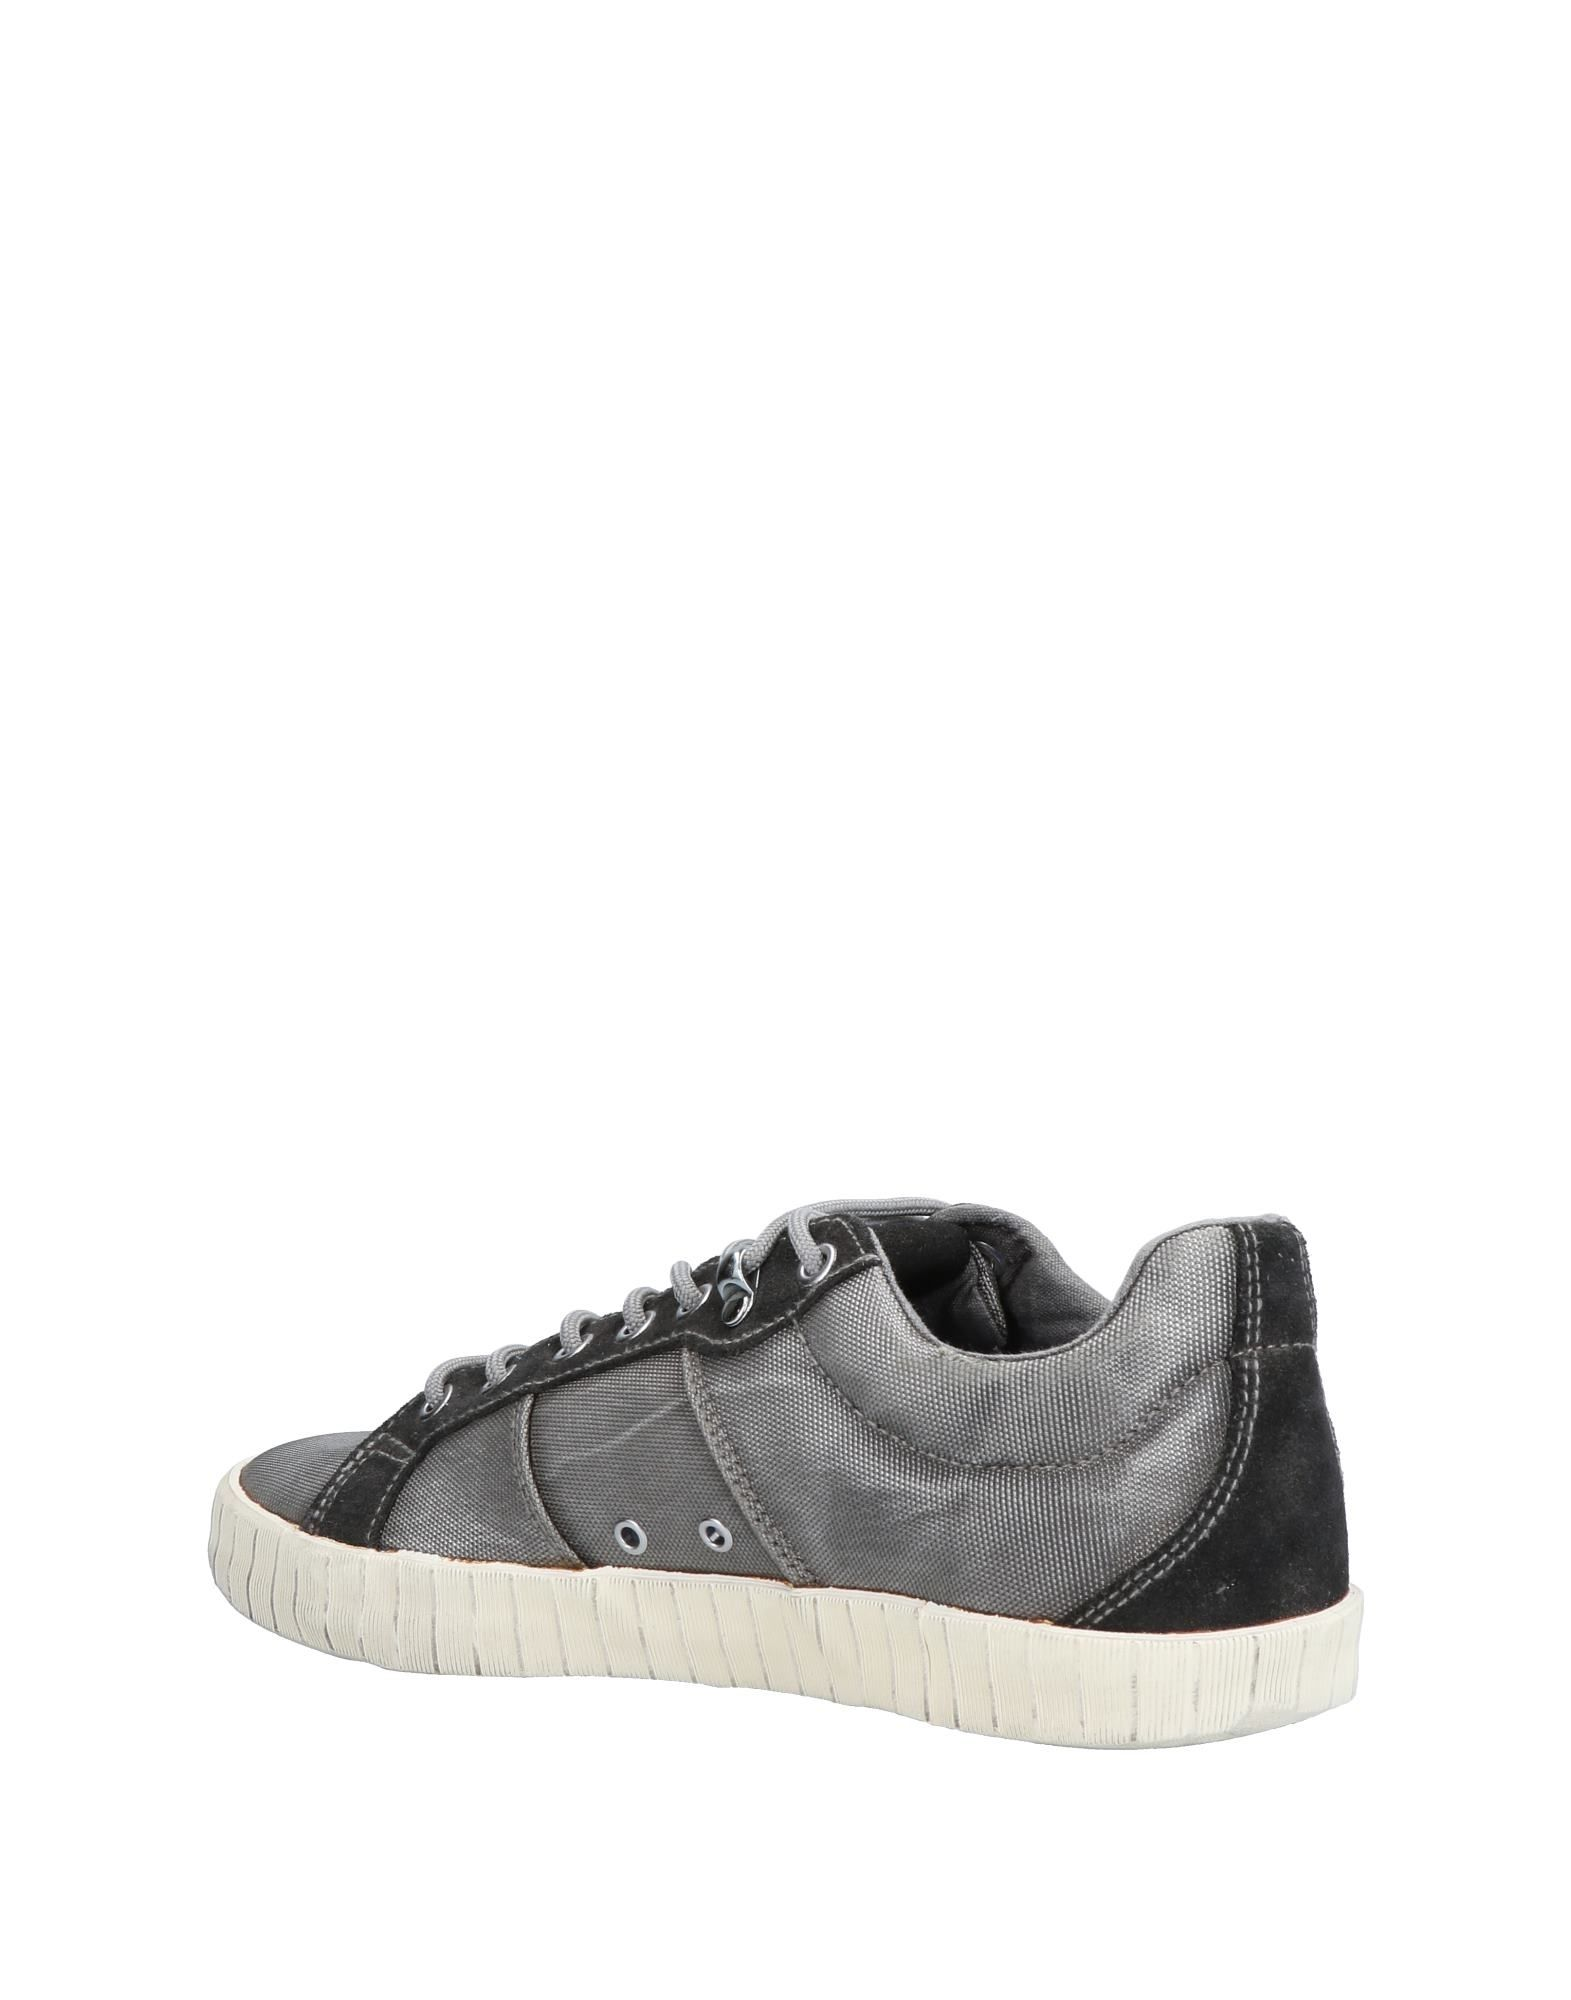 Moda Sneakers Replay Uomo - 11517395WI